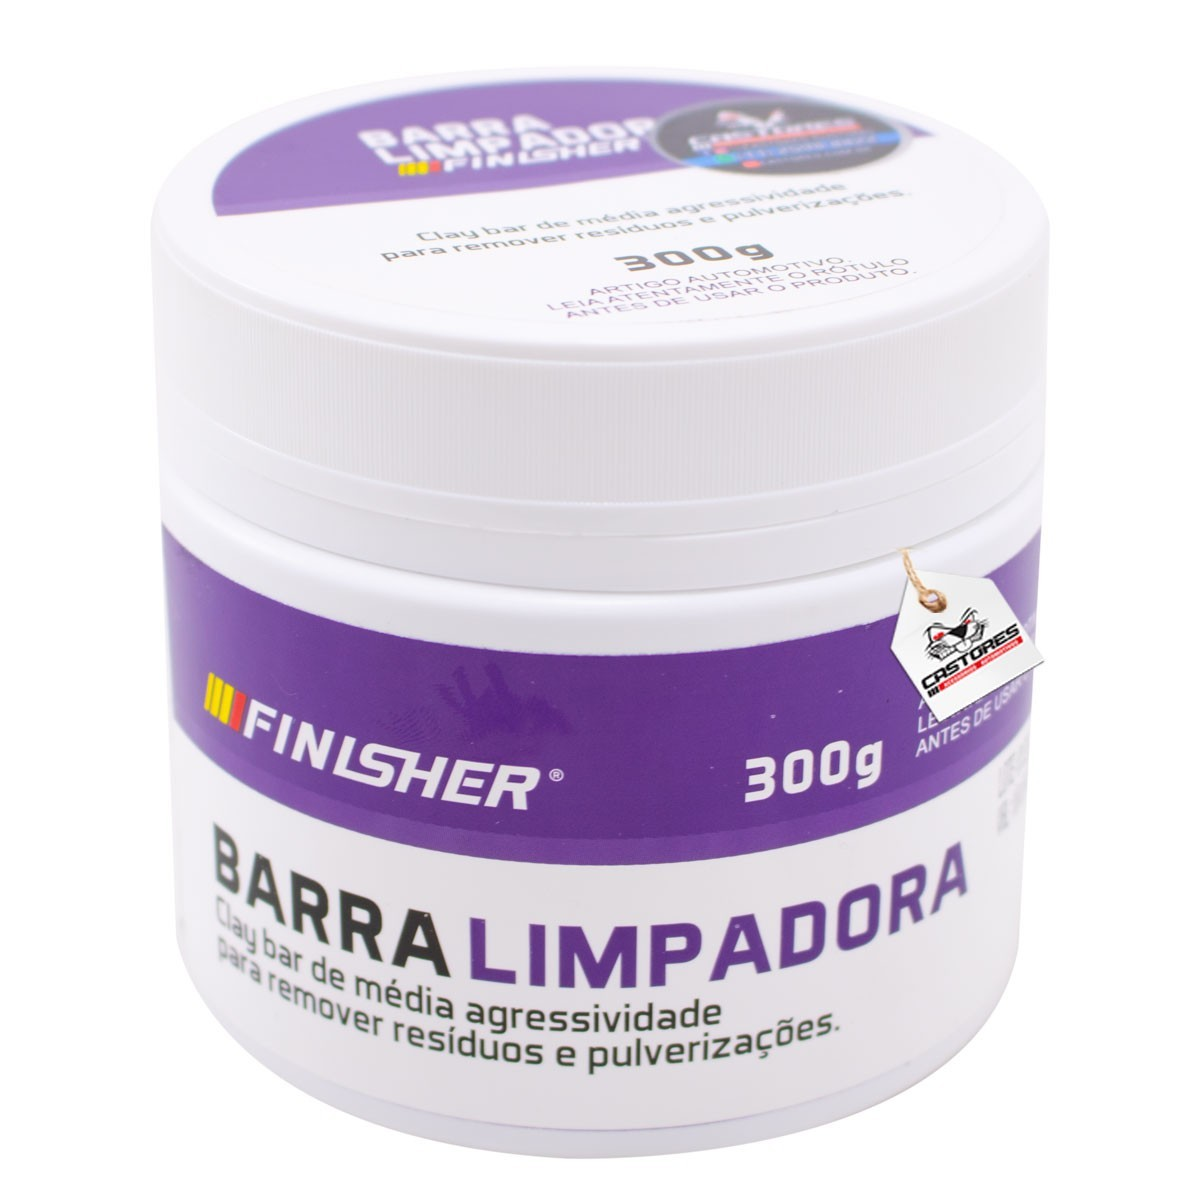 Kit Clay Bar Barra descontaminação 300g + Lubrificante Finisher